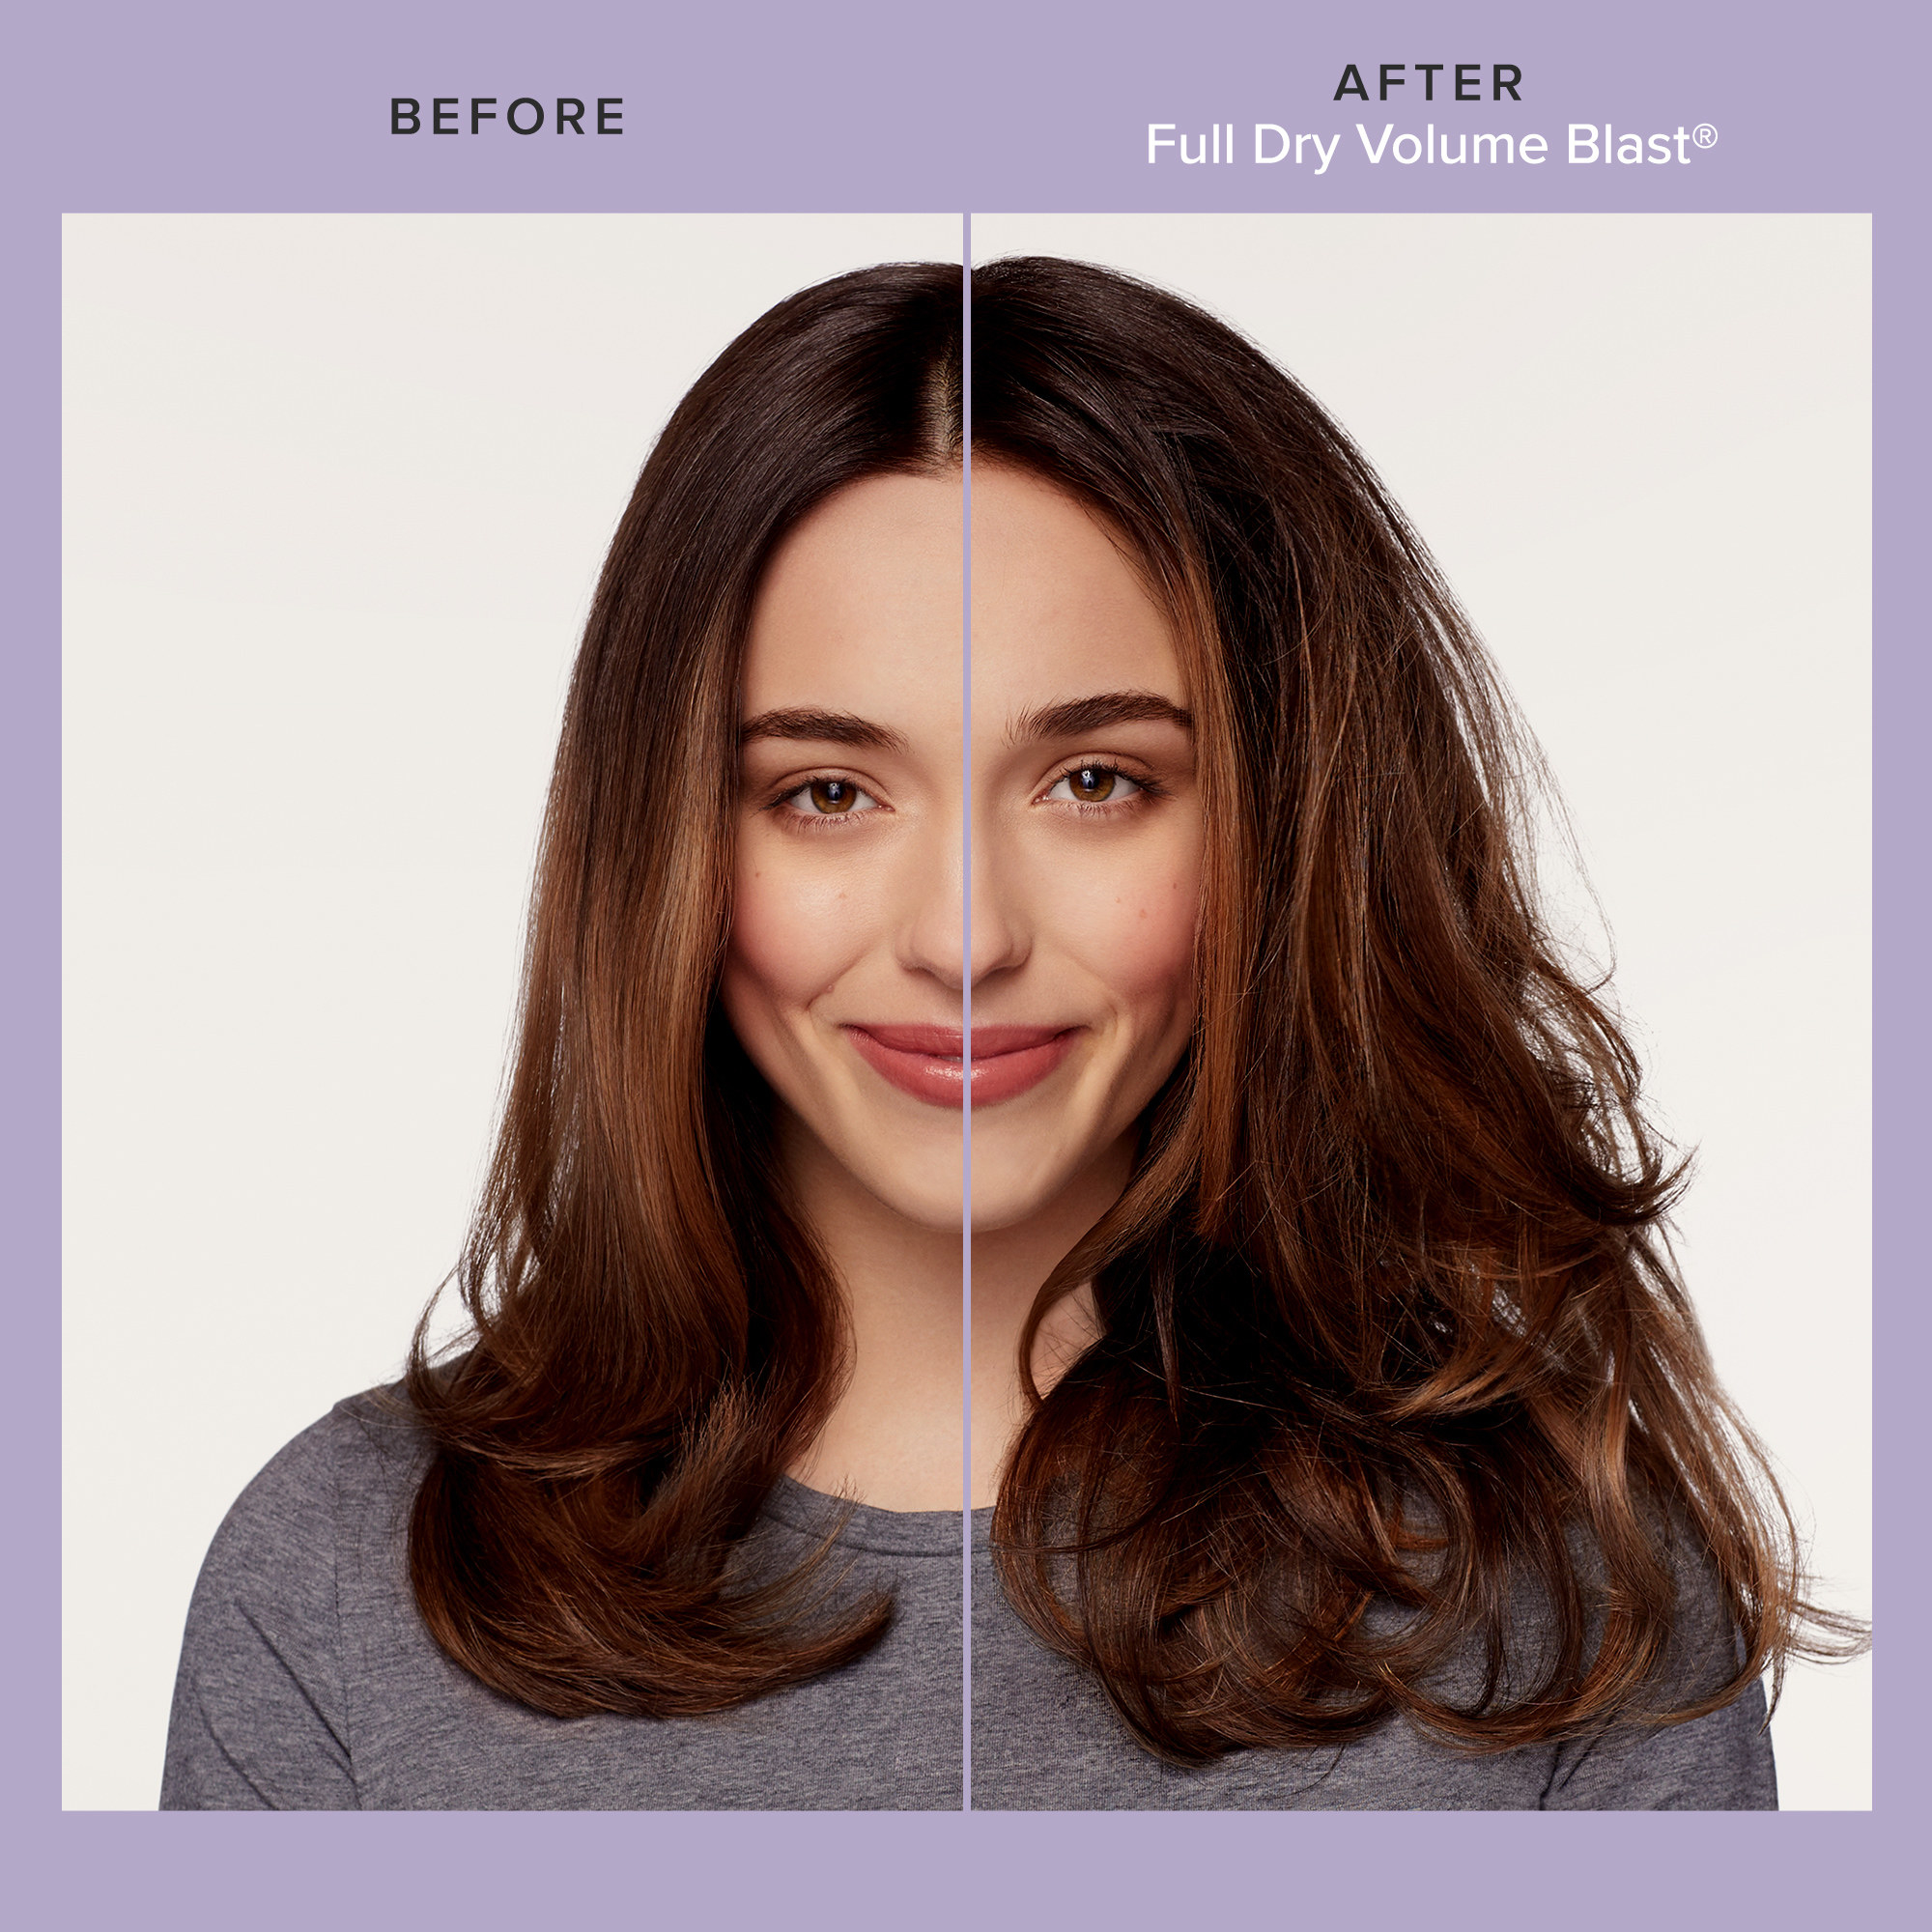 brunette woman showing before and after using living proof dry volume blast